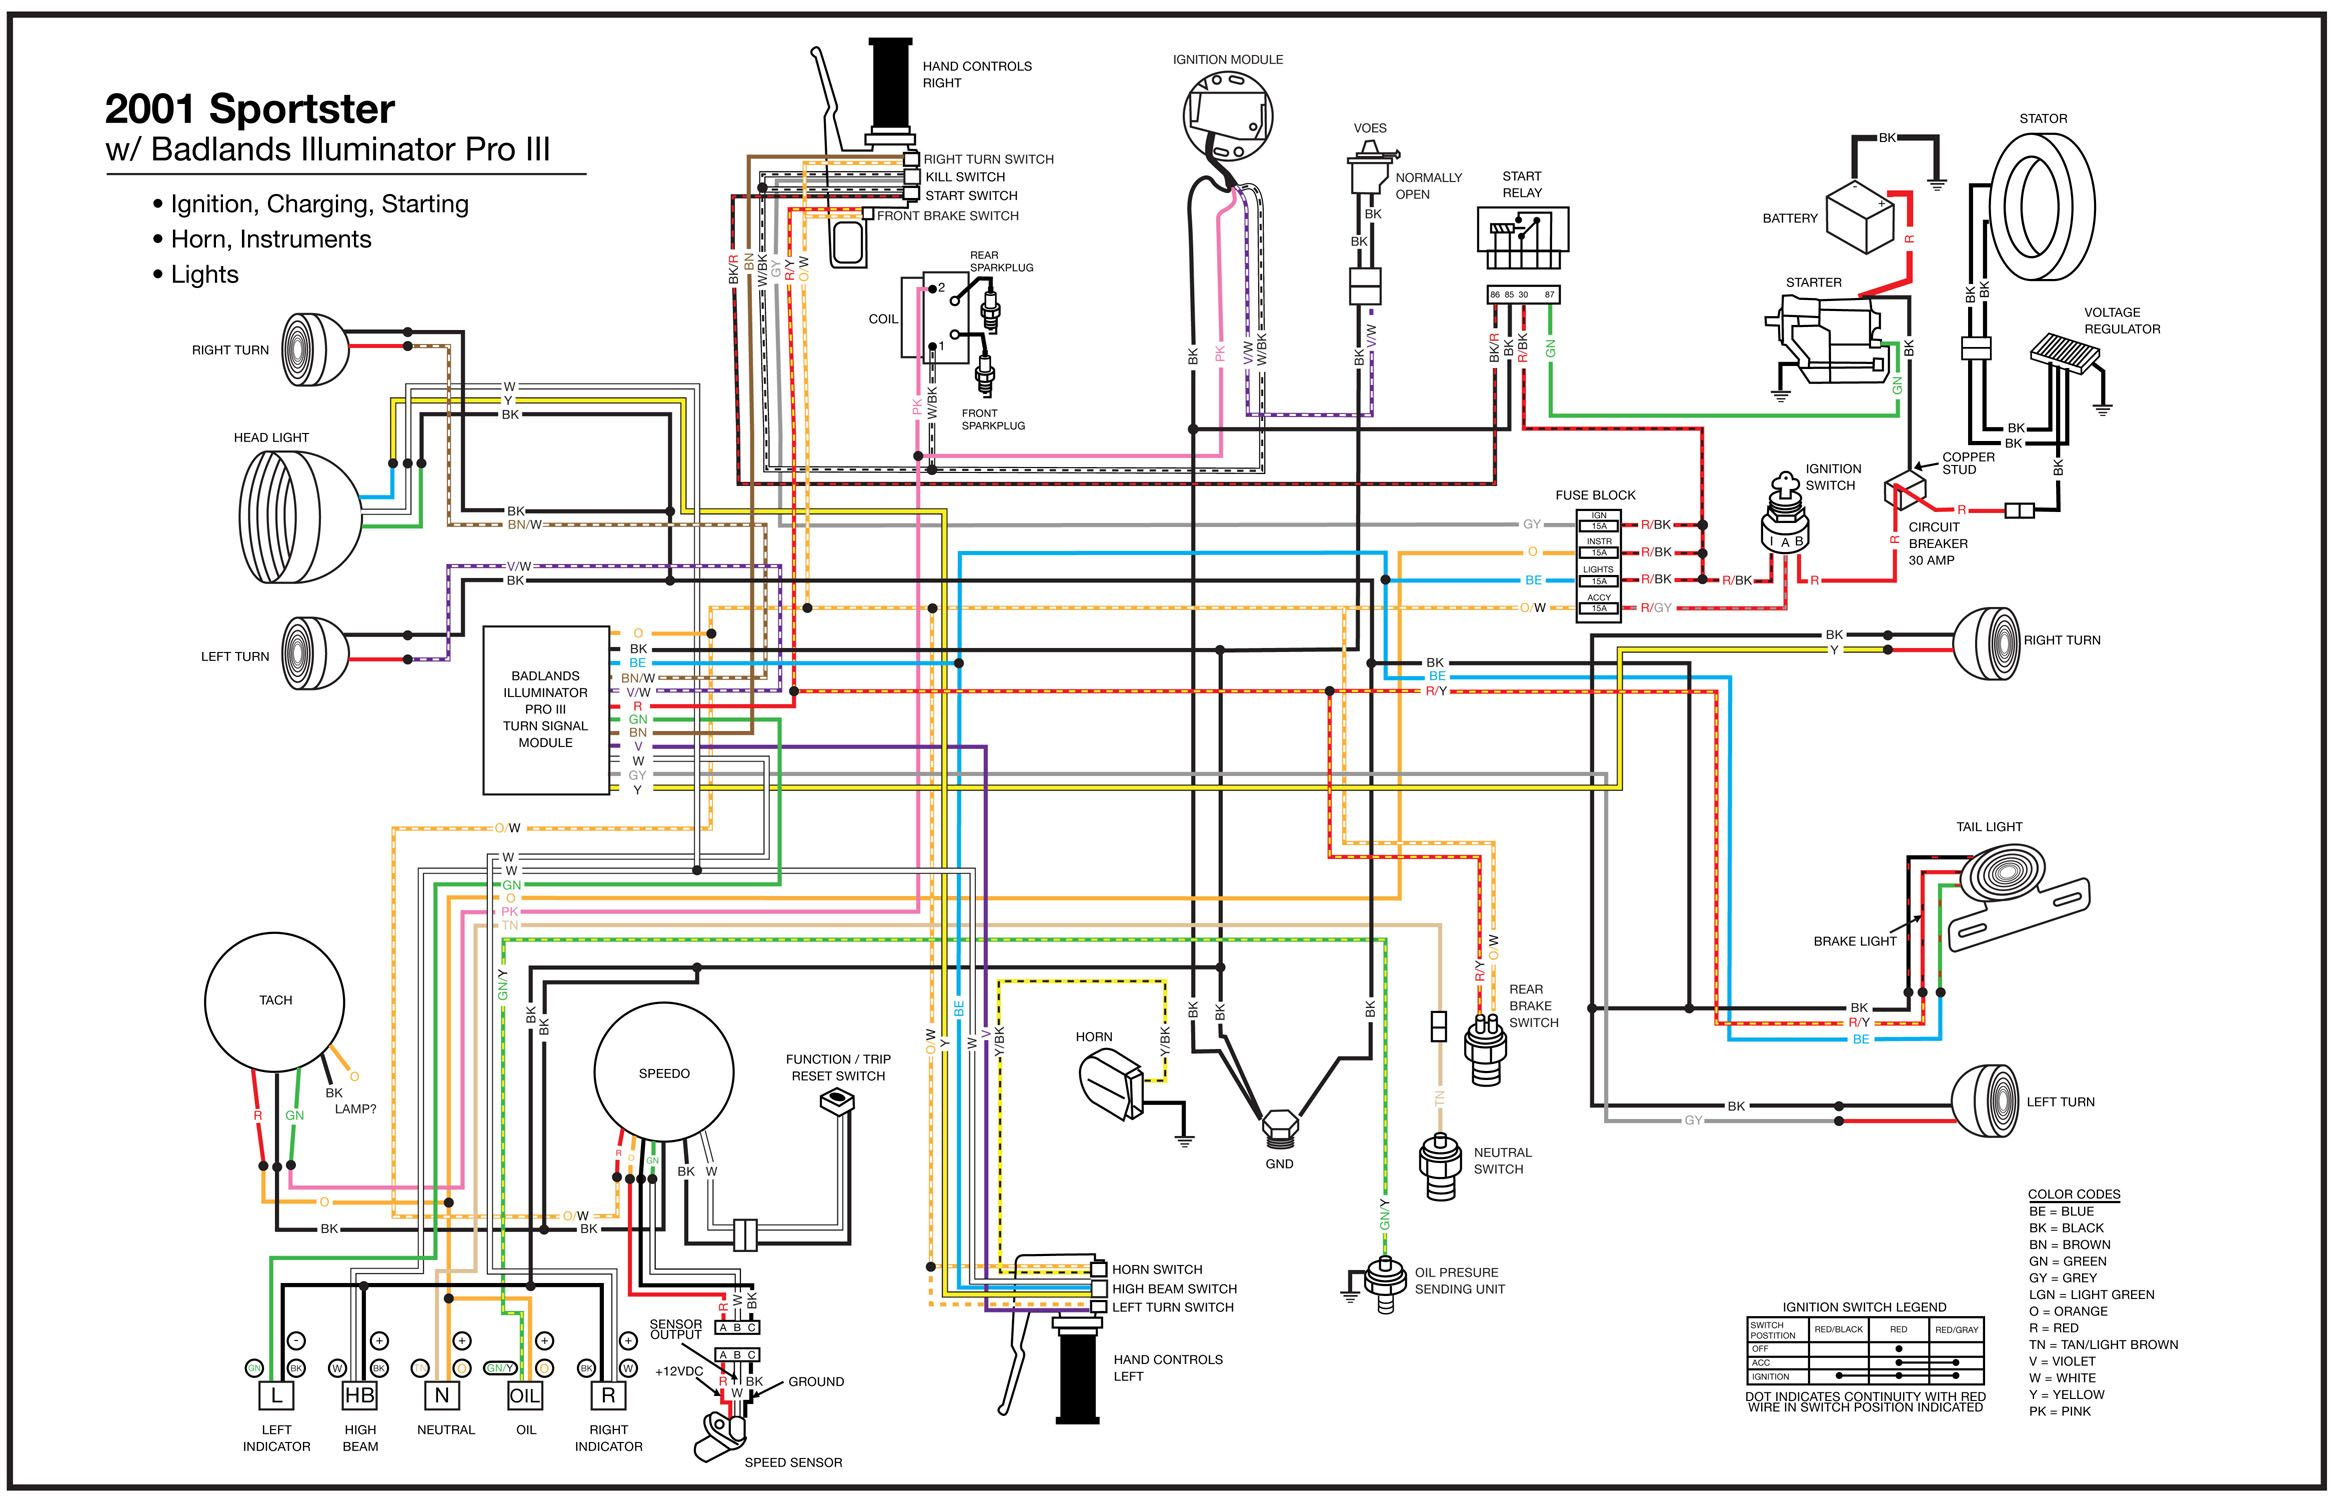 Rigid_EVO Sportster Illuminator Pro 3 Wiring Diagram - The Sportster and  Buell Motorcycle Forum